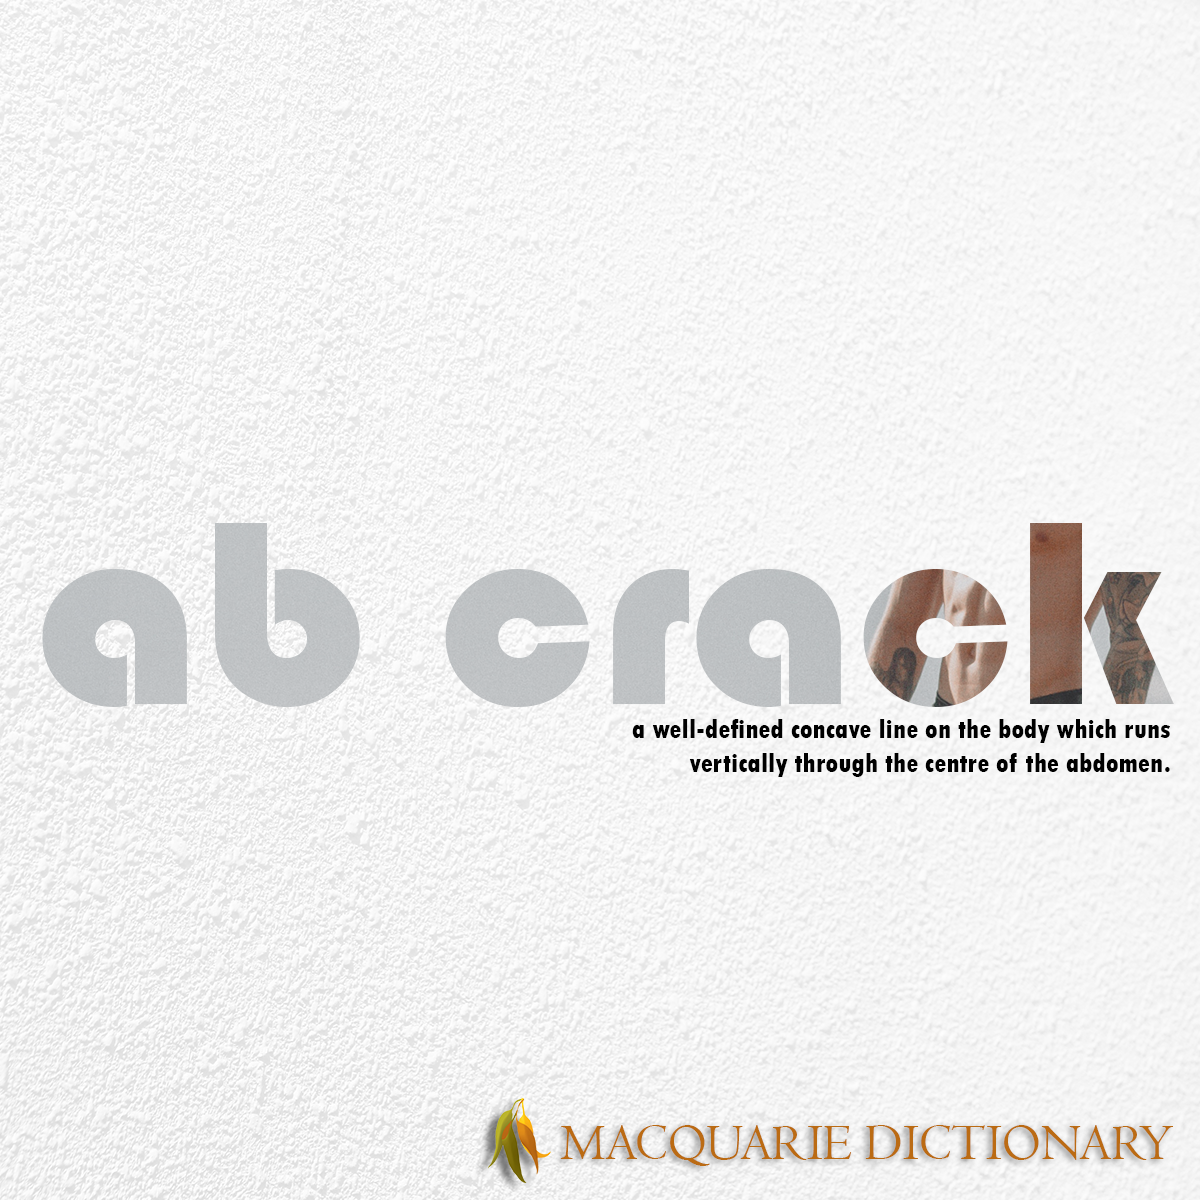 Image of Macquarie Dictionary Word of the Year - ab crack - a well-defined concave line on the body which runs vertically through the centre of the abdomen.